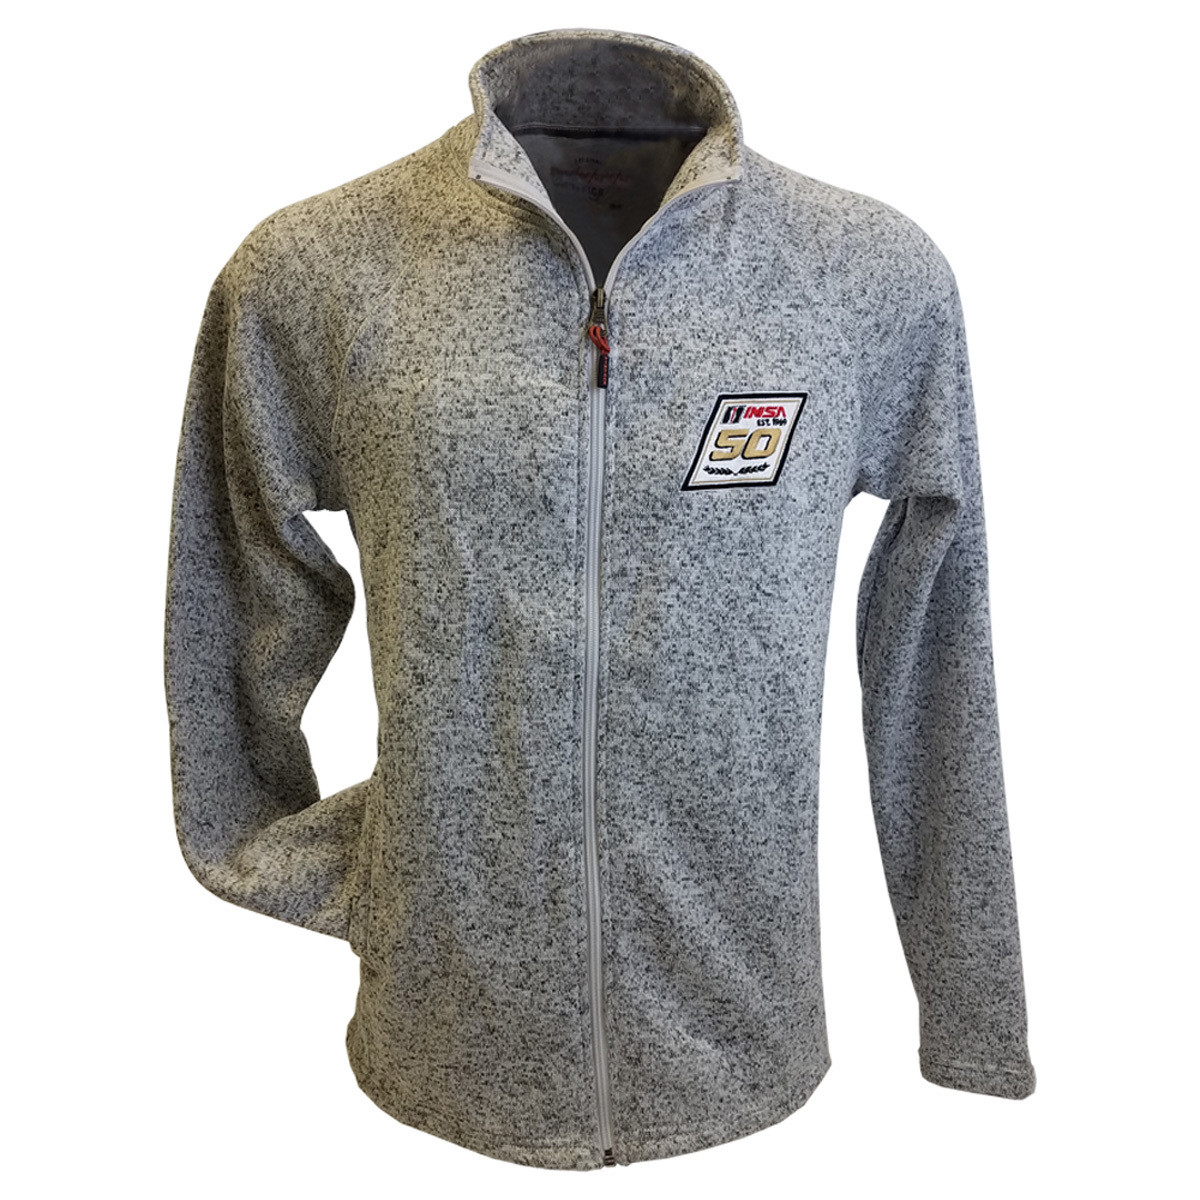 IMSA 50th Full Zip Fleece